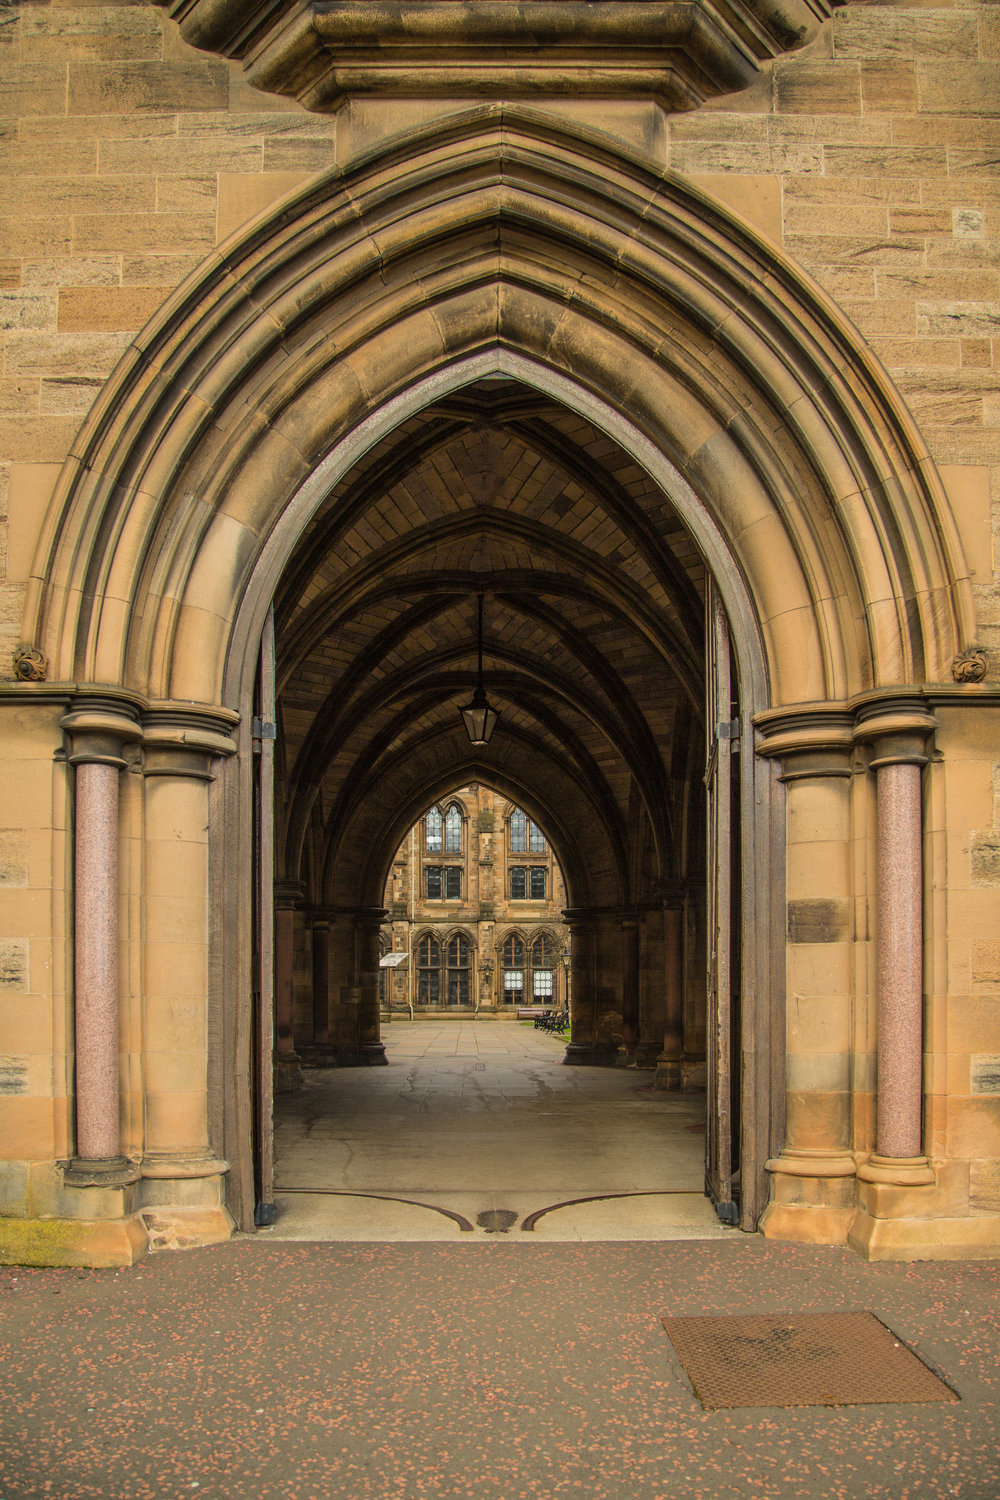 Entrance to the Quad